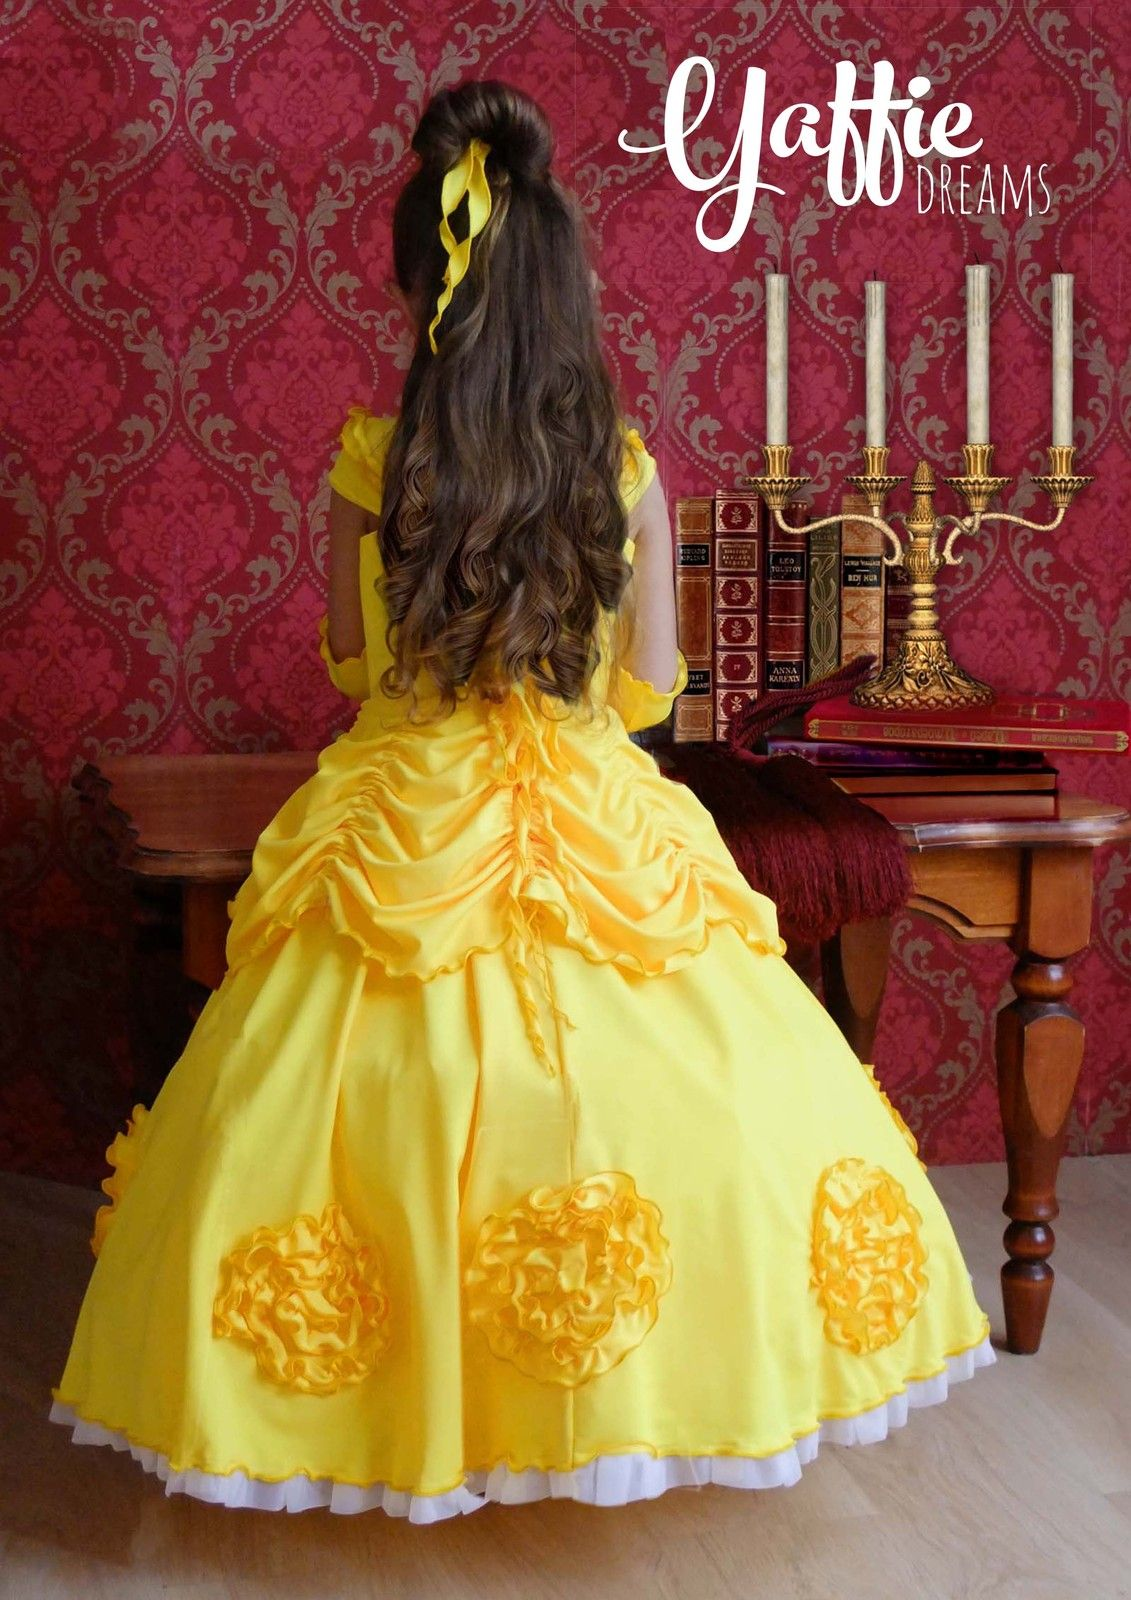 292ed75d8431 Disney Beauty and the Beast dress Halloween cosplay costume Princess Belle  gown Disneyland Rose Birthday Party Gift Ideas Beautiful outfit for flower  girl ...